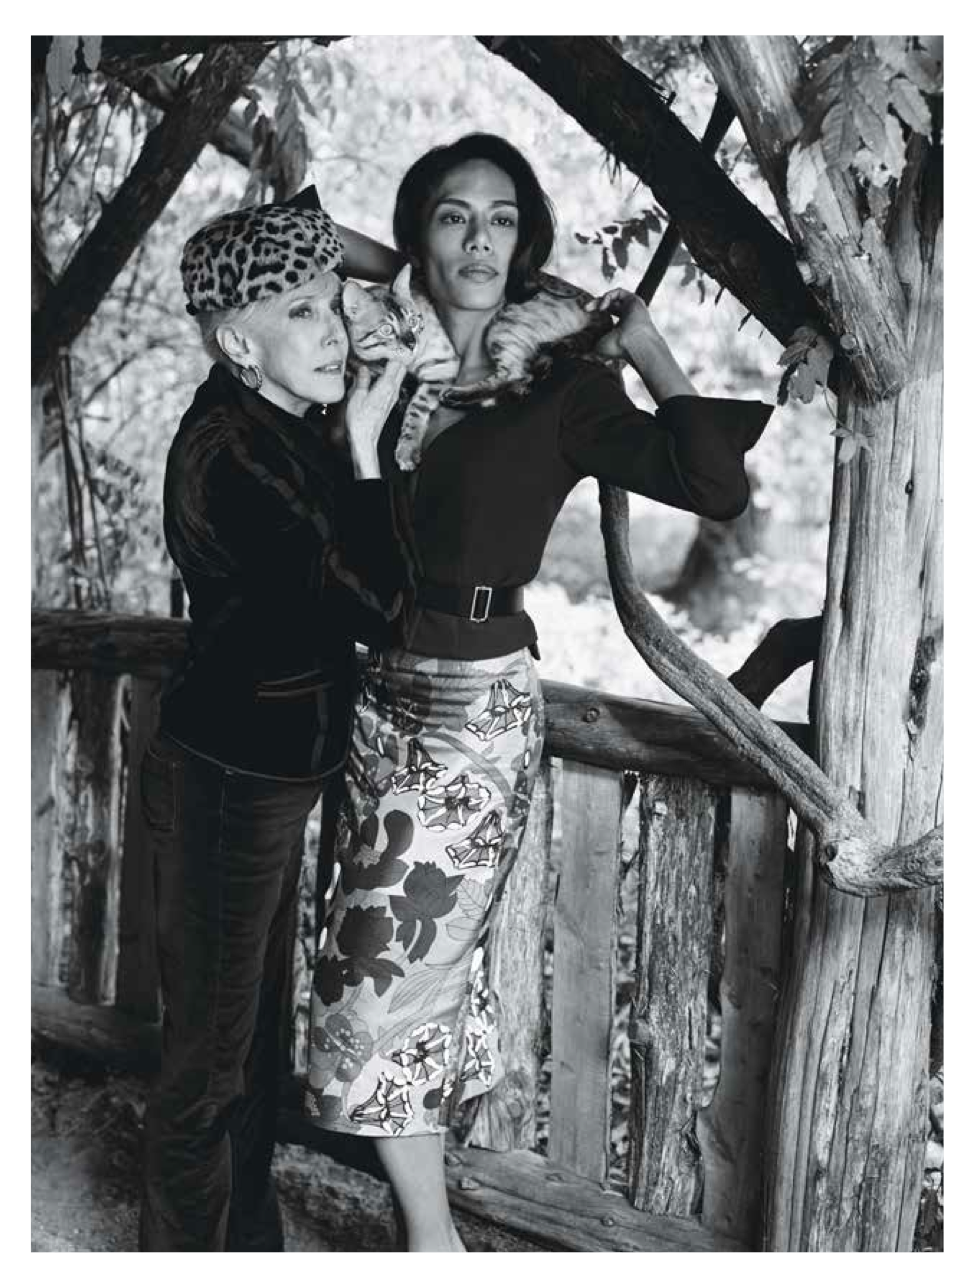 Dorothy Palmer, Coco and I in Central Park shot by Bruce Weber